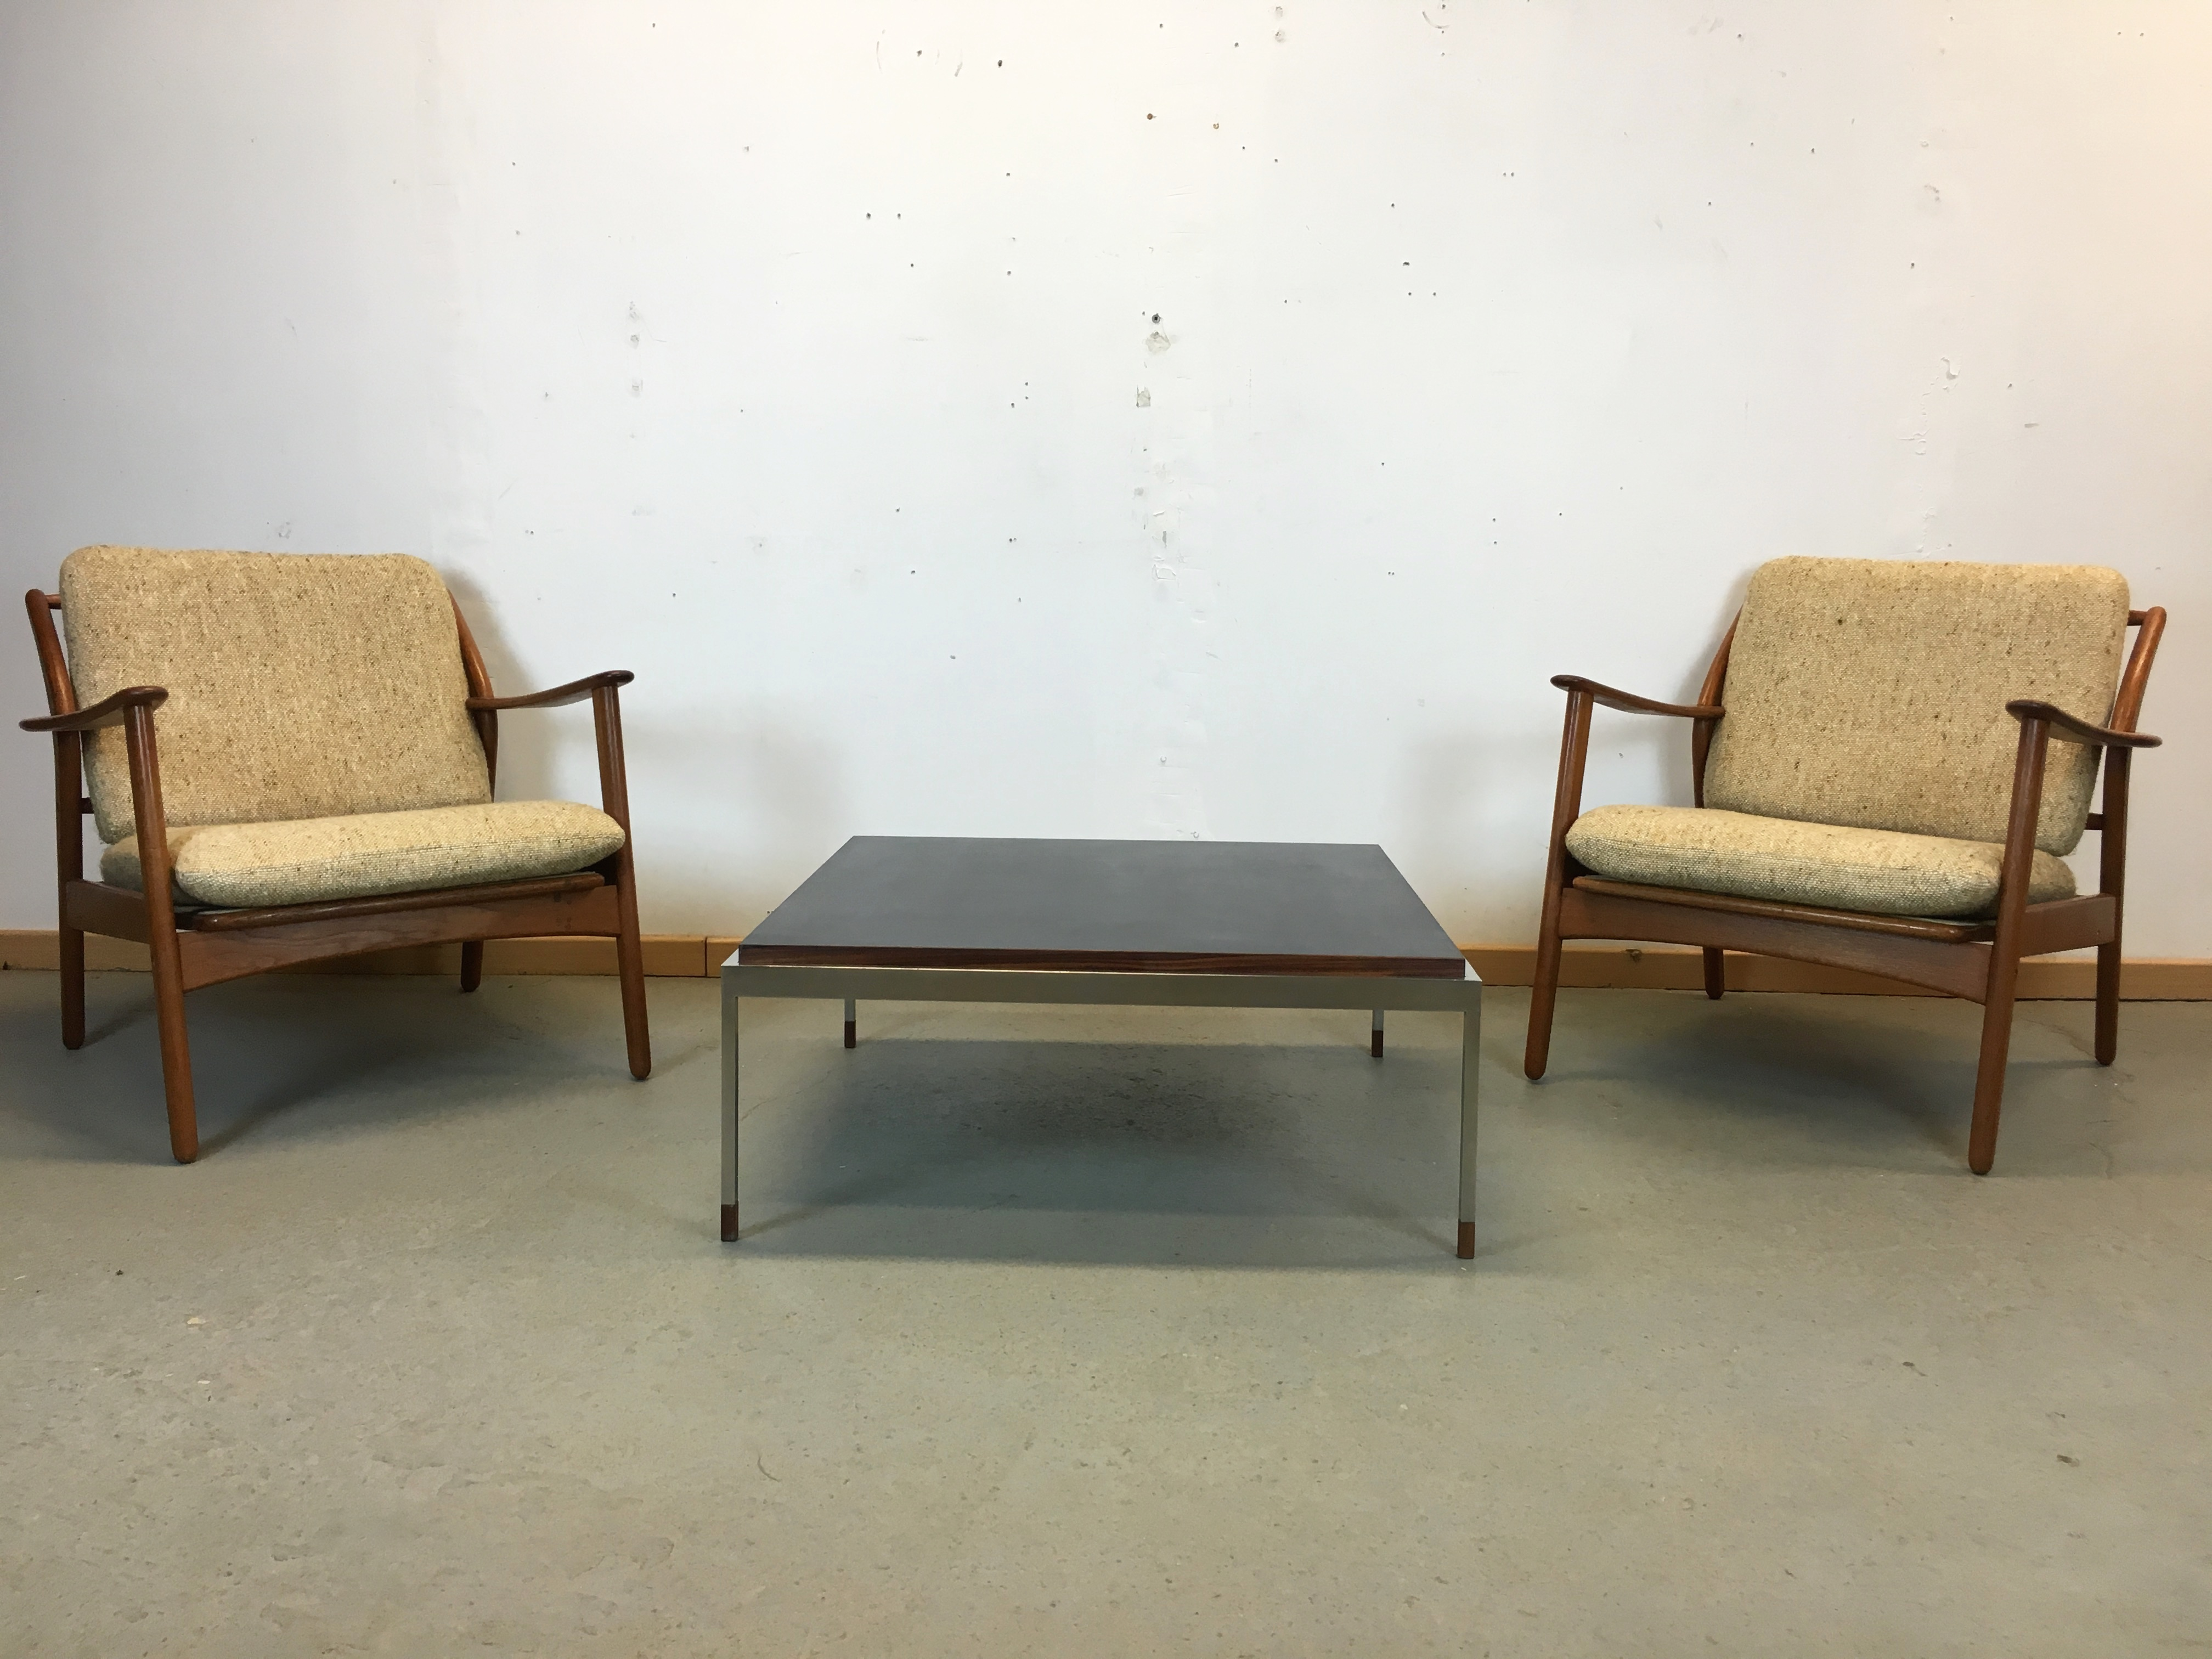 Table Basse En Formica table basse formica année 60 coffee table modernist 60's |